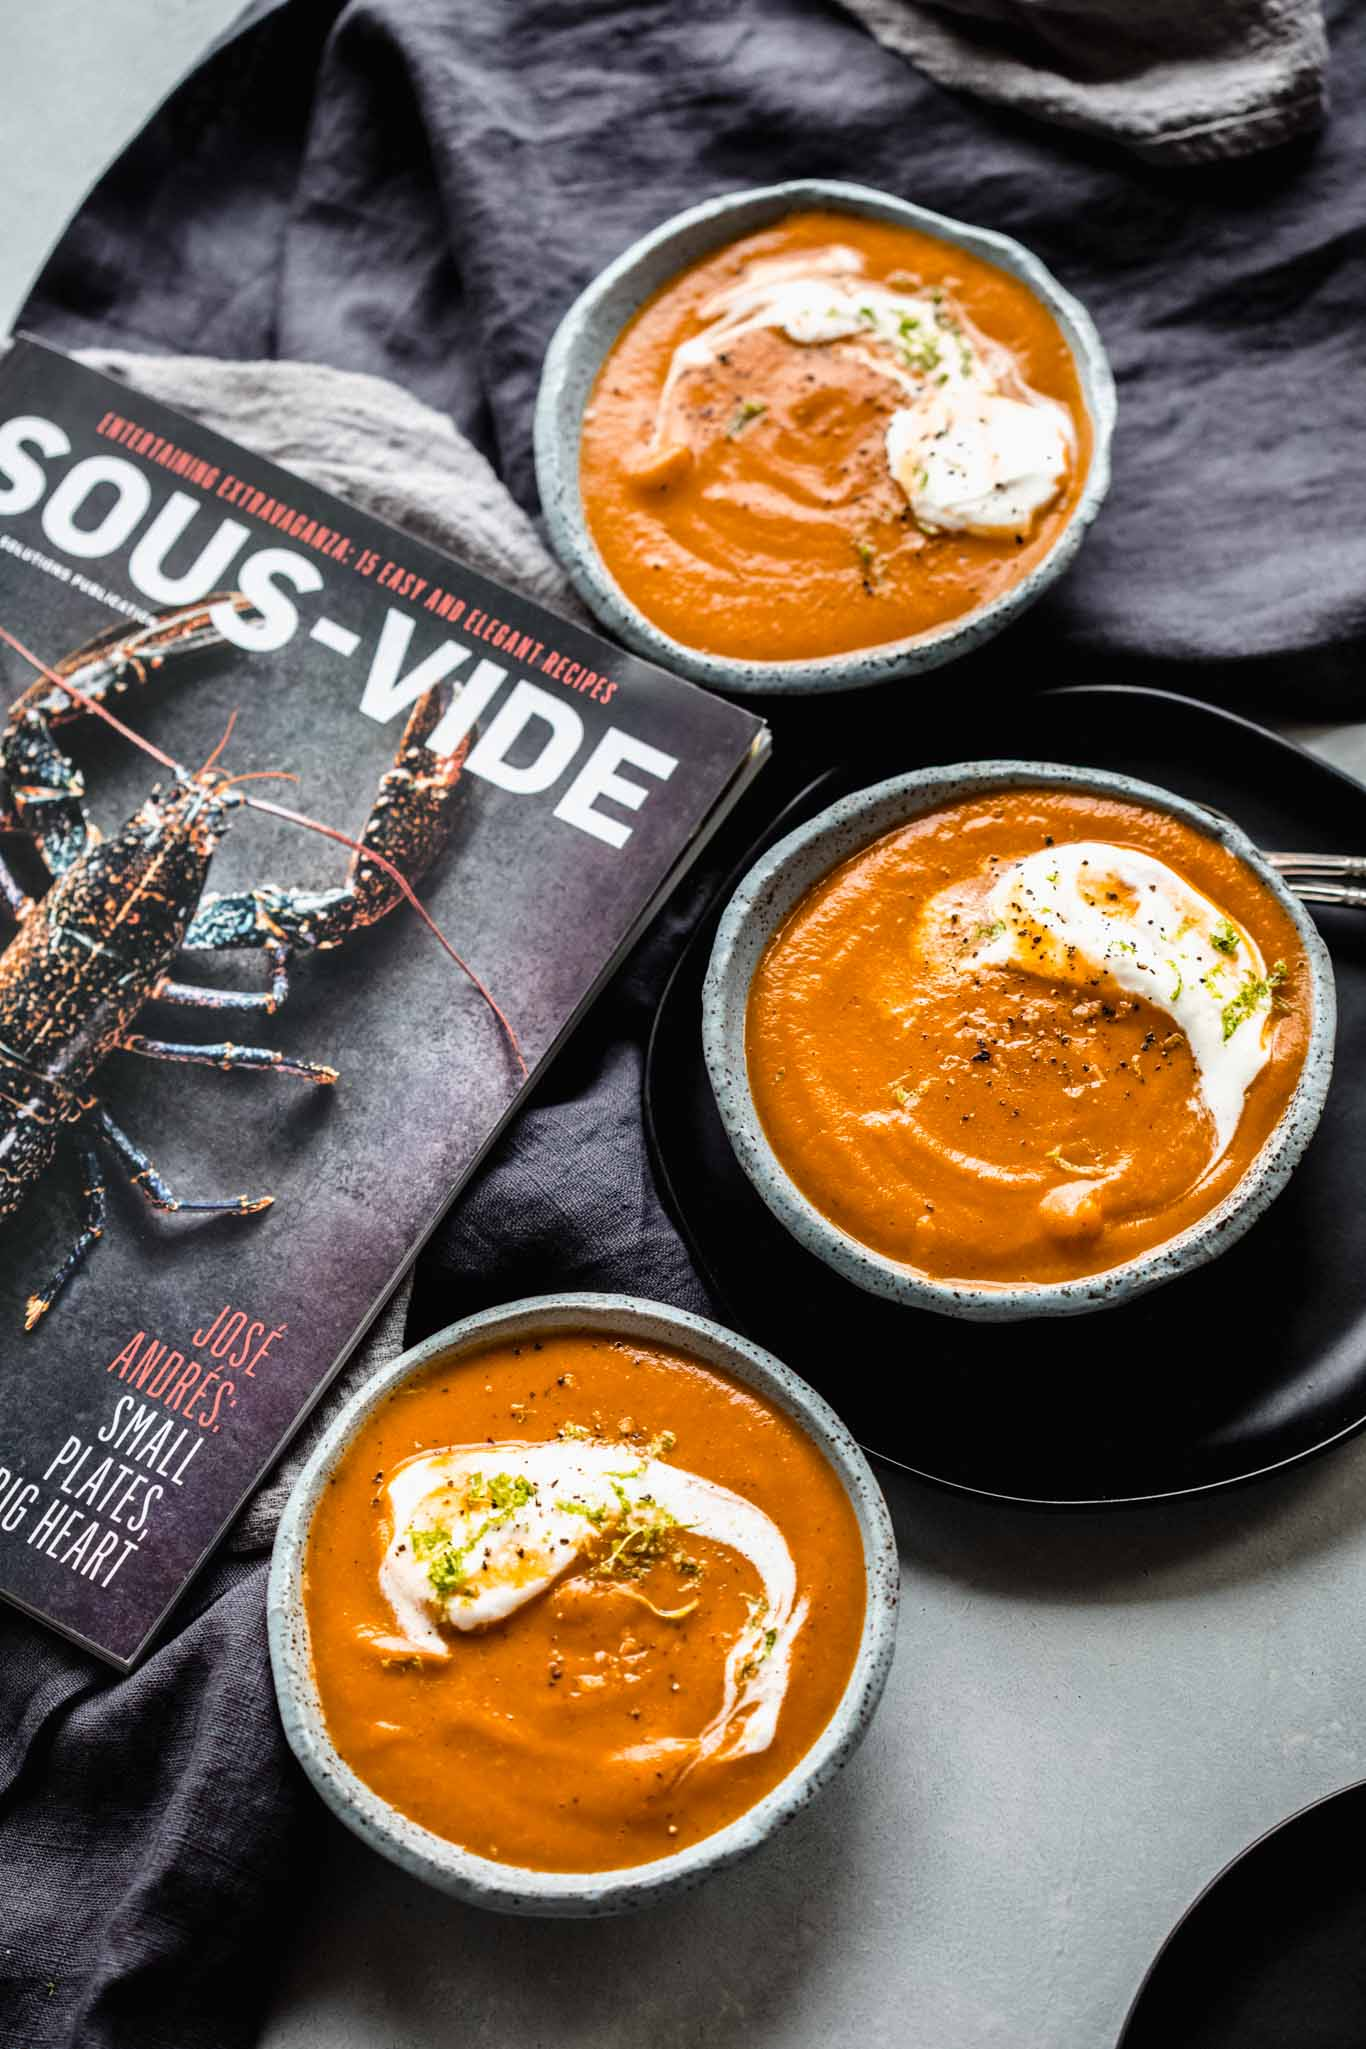 Bowls of carrot ginger soup next to sous vide magazine.